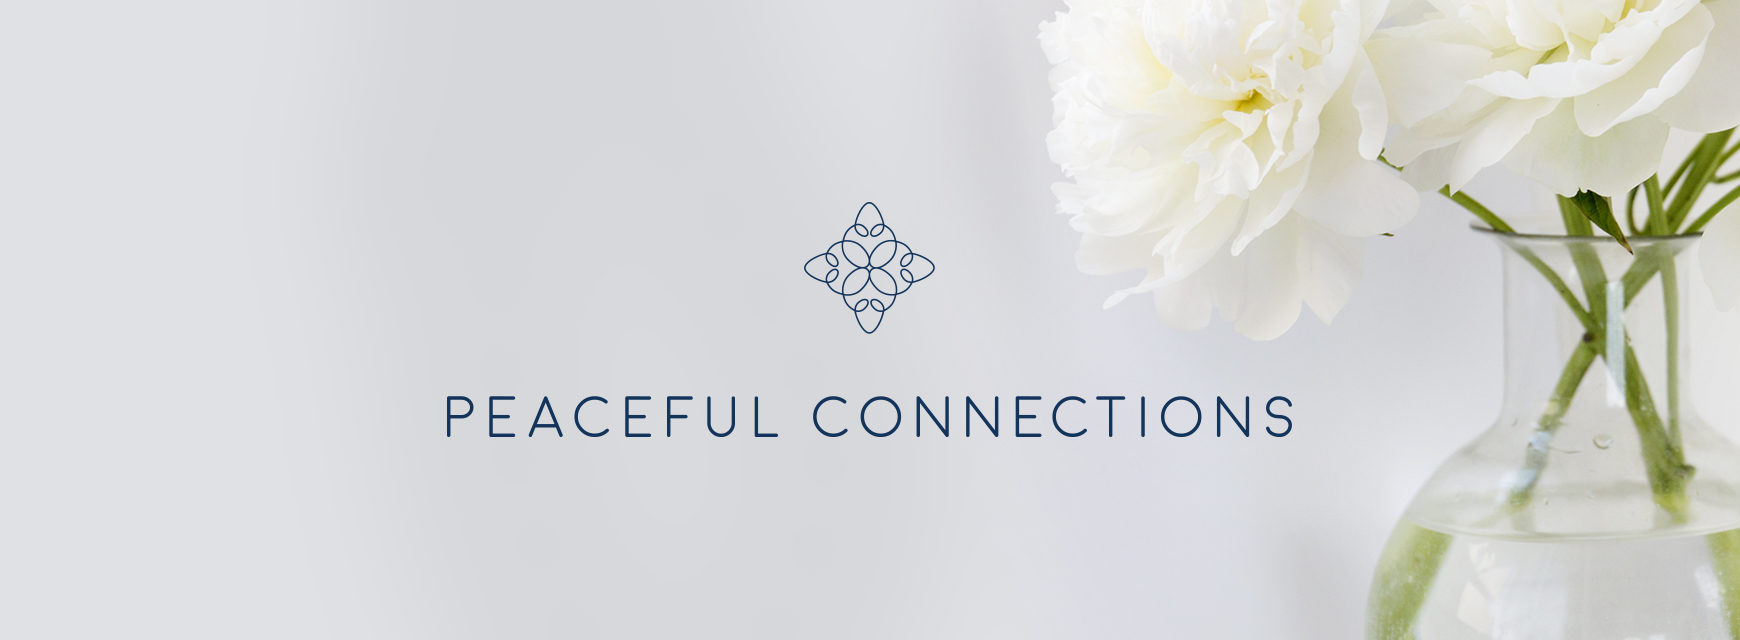 massage therapy branding: Peaceful Connections Branding Case Study